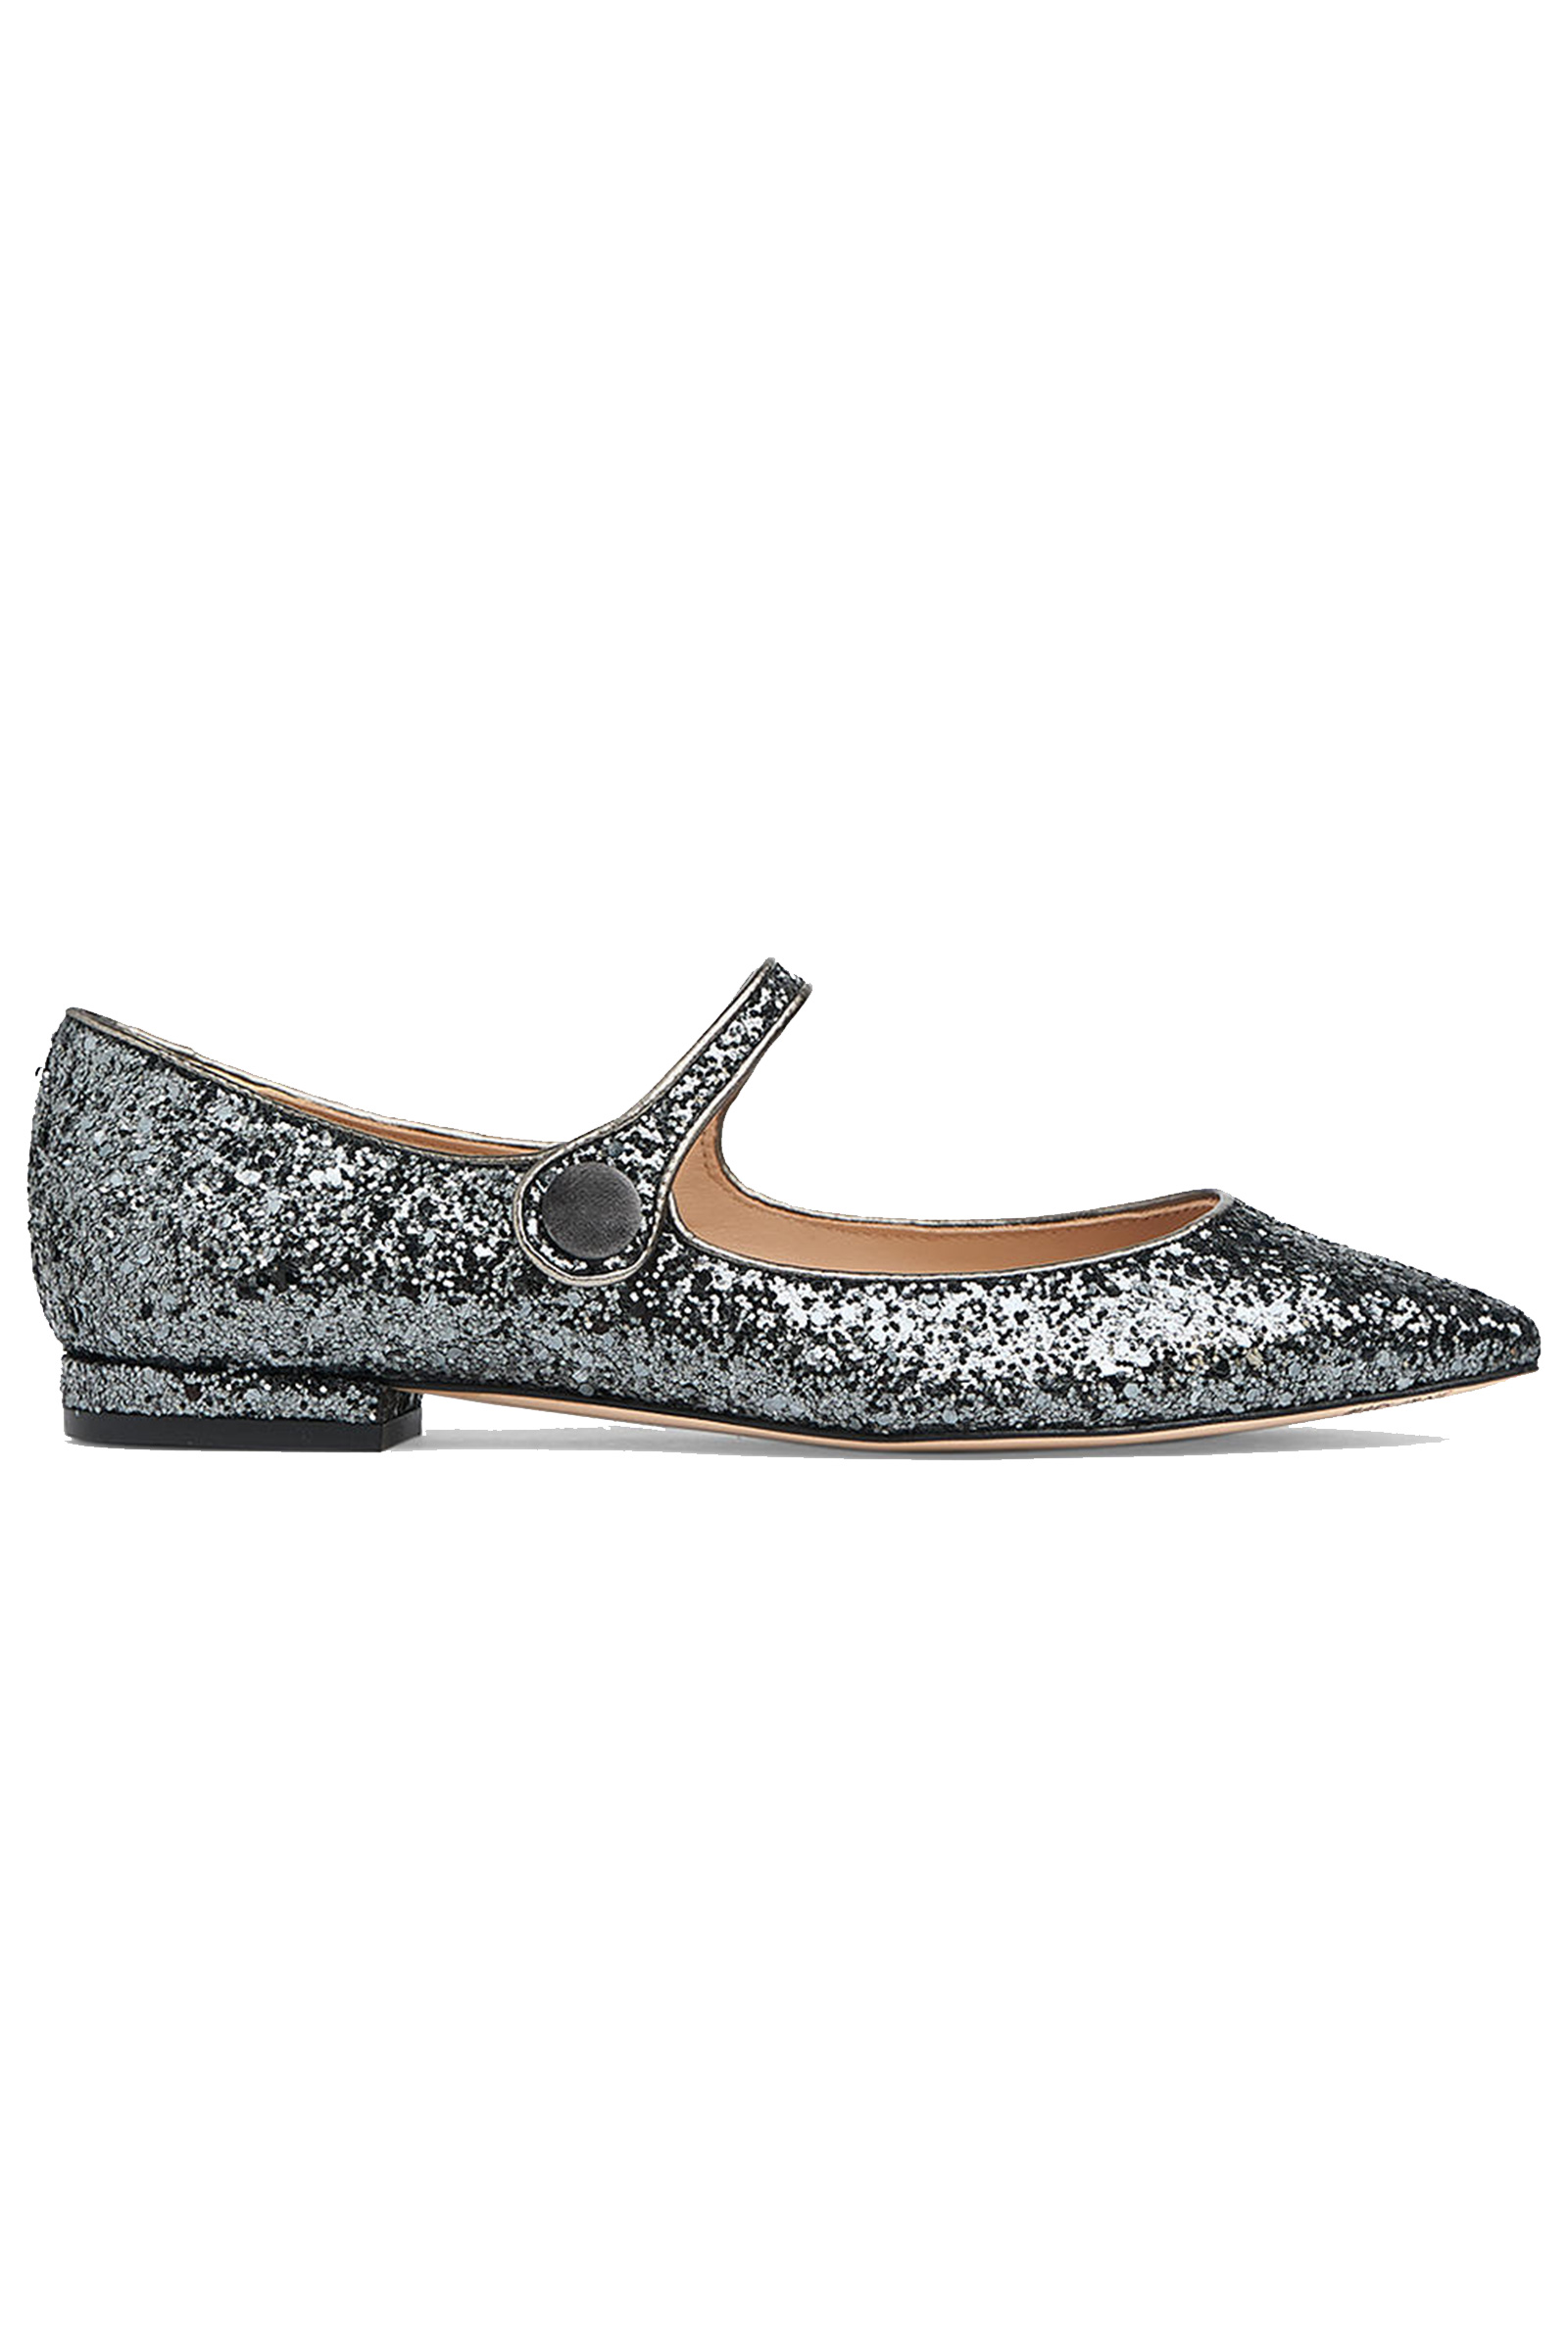 1e04f86c6a92 Buy L.K.Bennett Mary Jane Flat Shoes in Charcoal Glitter Online